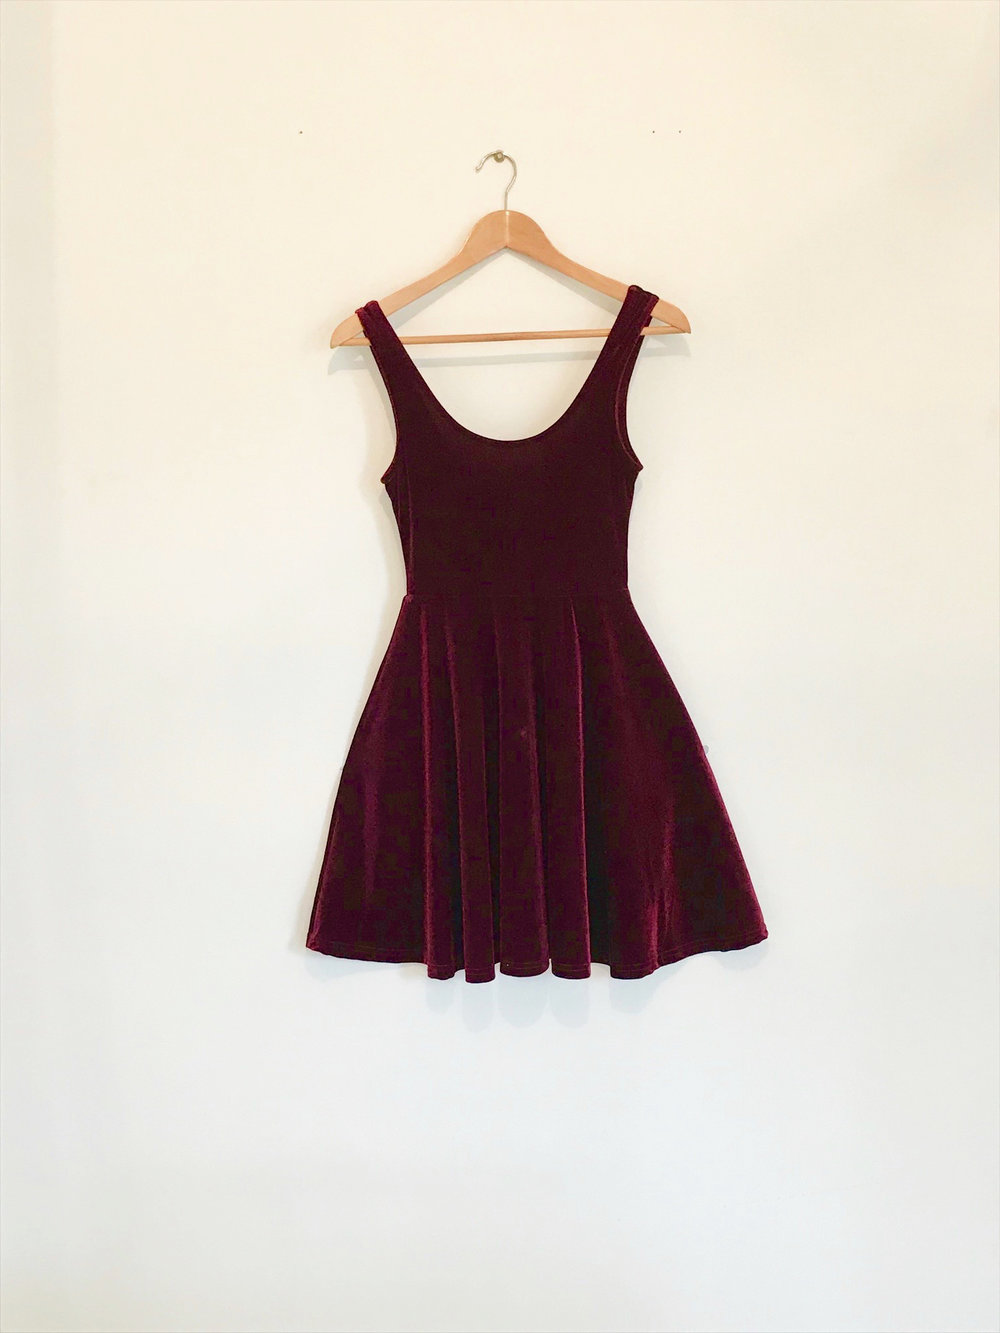 f0e5cbc624 Introducing... my ruby red velvet dress. I know right stunning! I've had  this dress for ages. Such a staple in my wardrobe. It is so easy and  flattering to ...